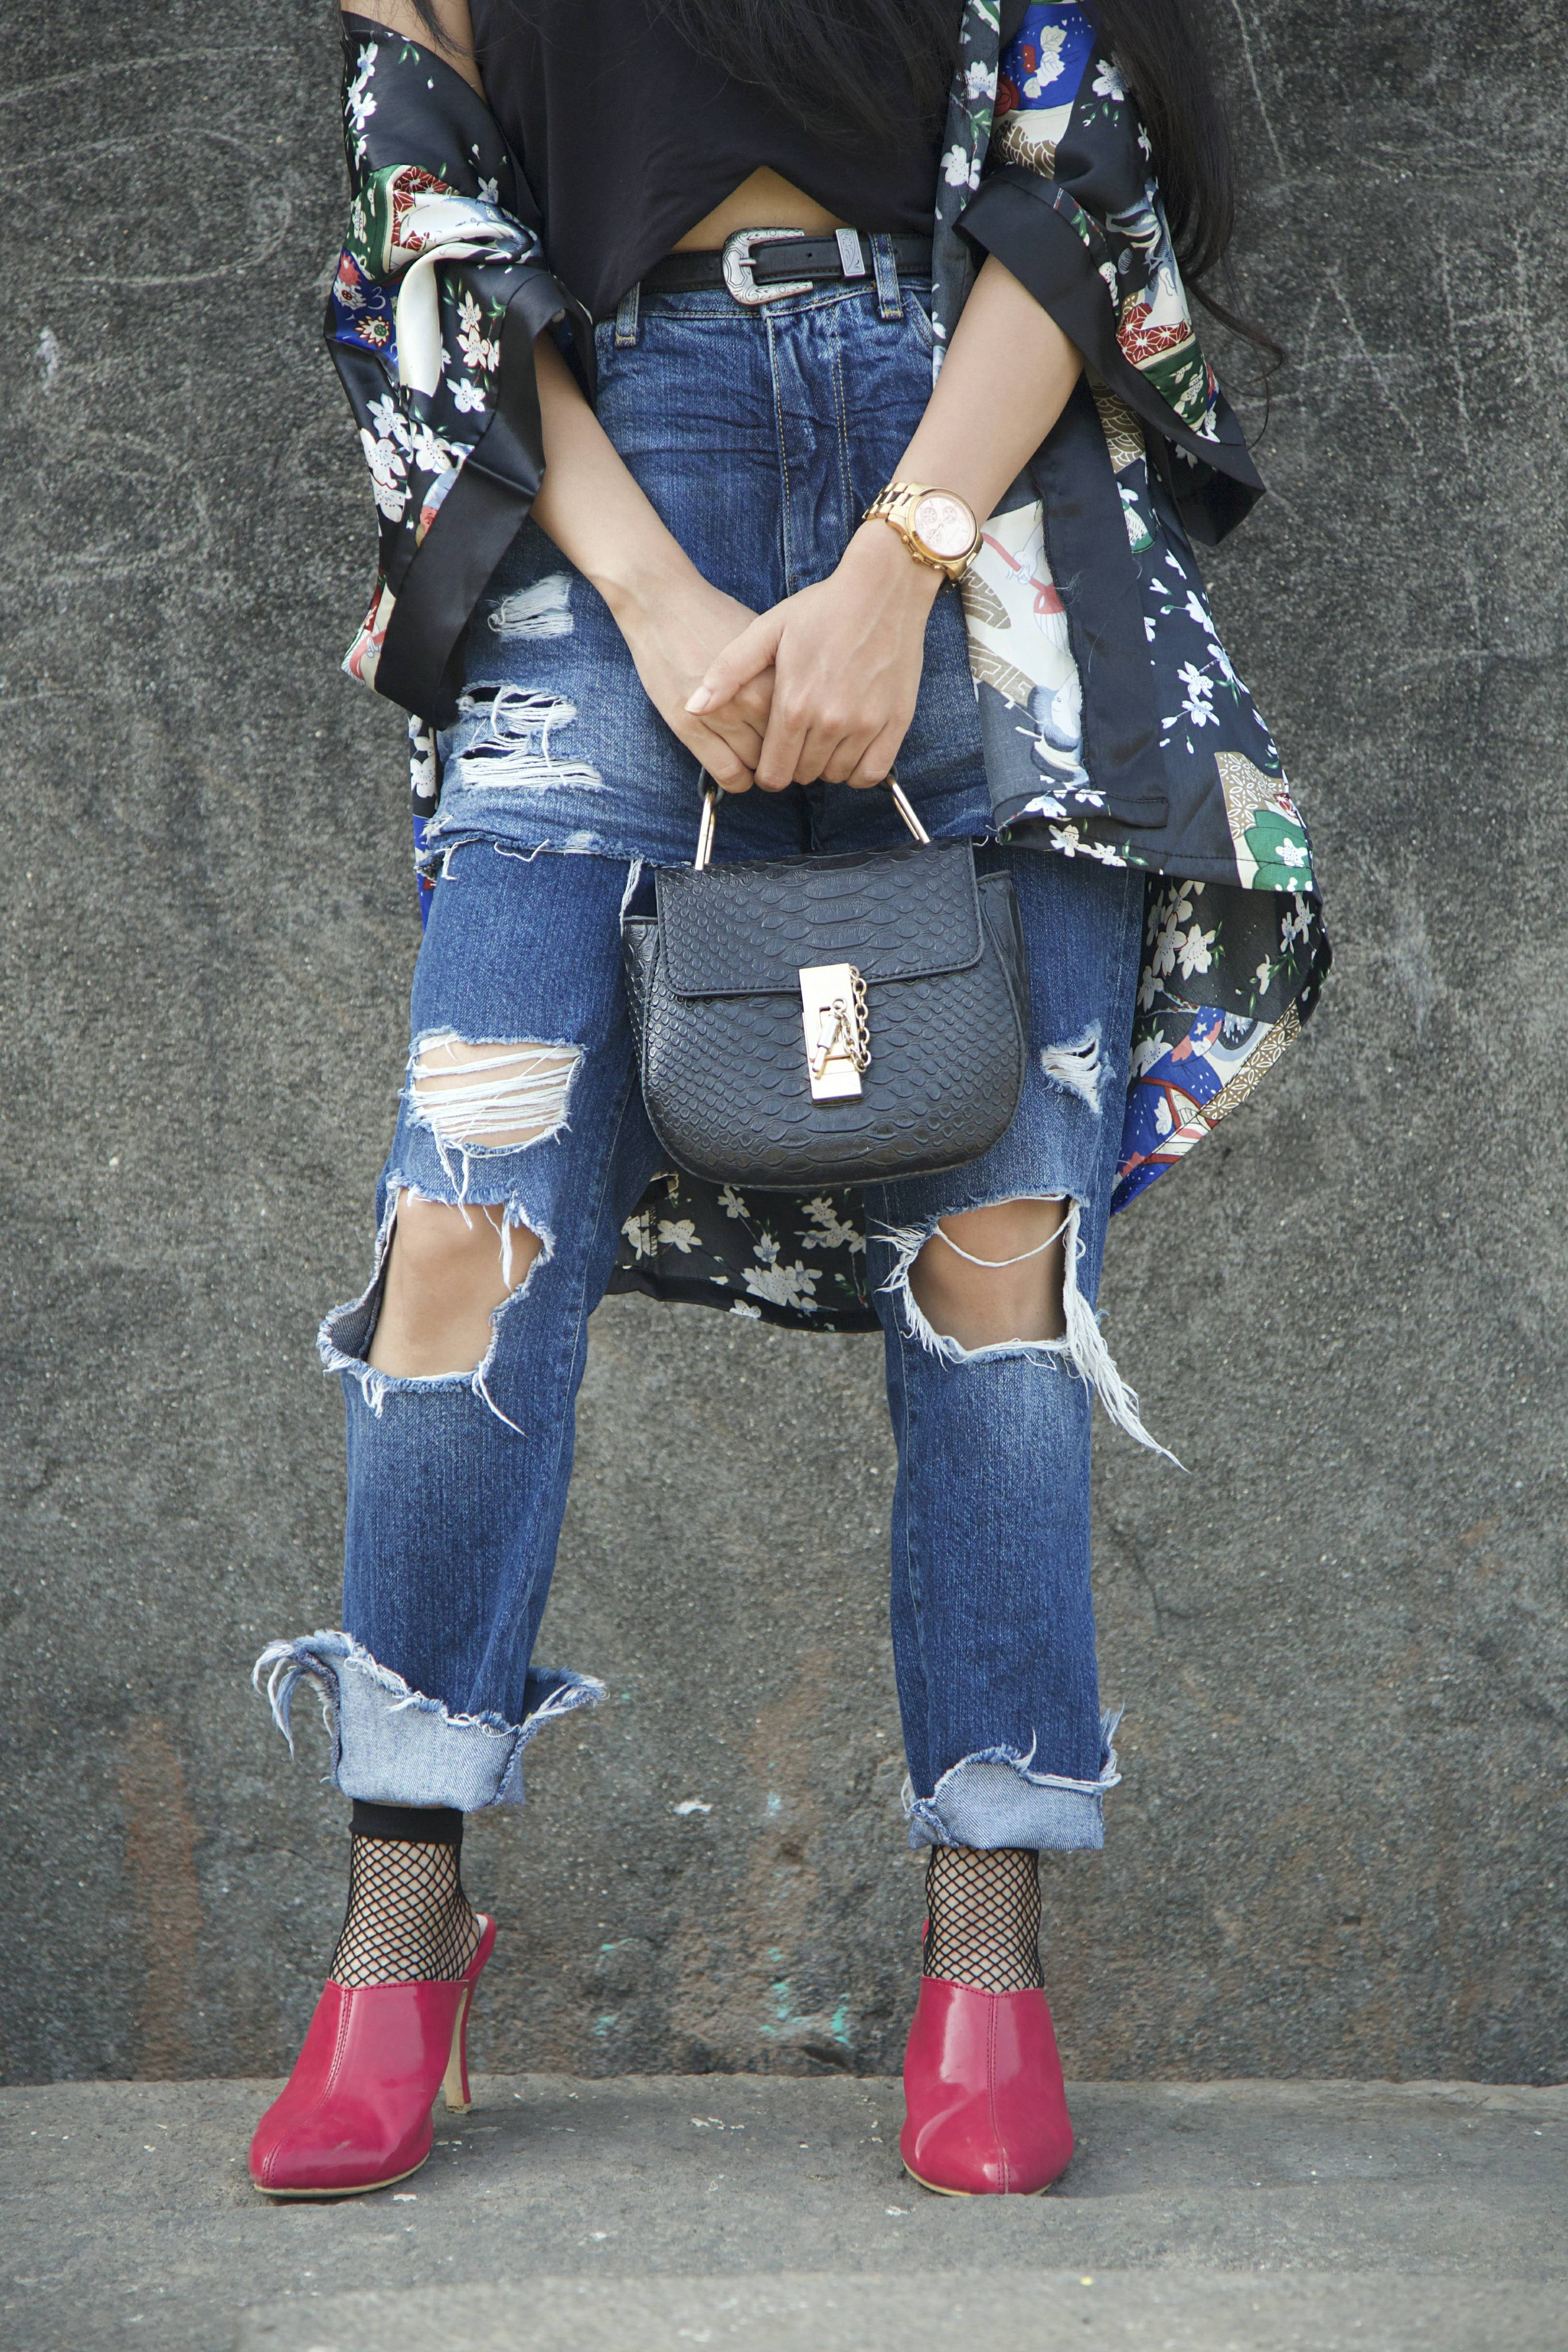 Dark florals, floral kimono, floral print, pink heels, pink mules, basic ootd, spring ootd, summer ootd, what i wore, who what wear, zara , ripped denims, fishnet, fishnet socks with heels, details, vogue